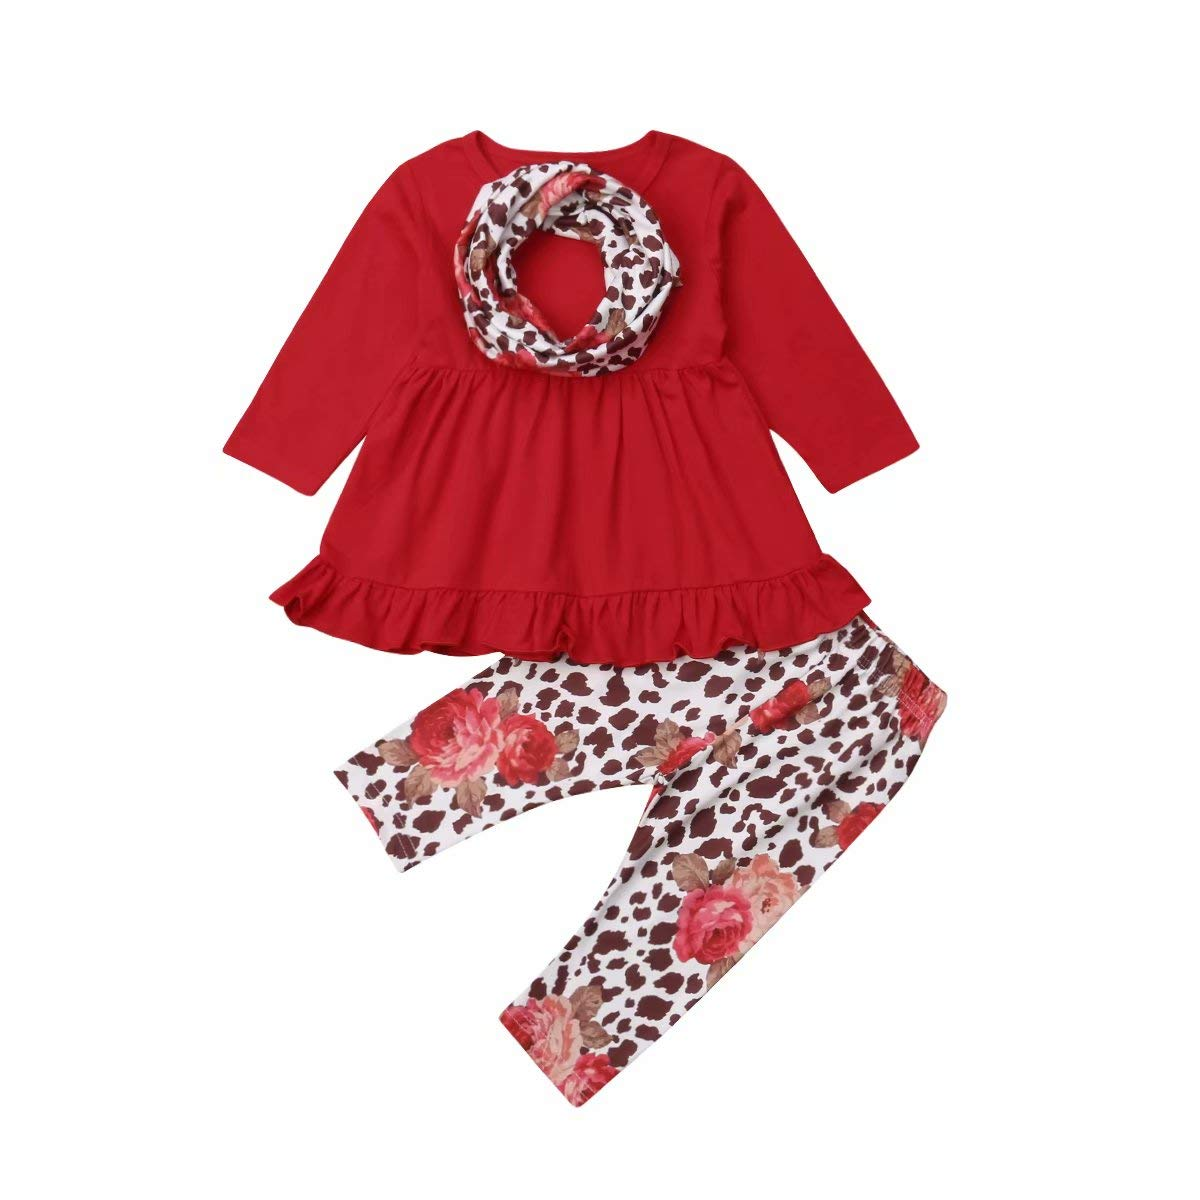 Kids Toddler Baby Girl Clothes Long Sleeve Tunic Dress Top Leopard Leggings Pants Headband 3Pcs Outfit Set